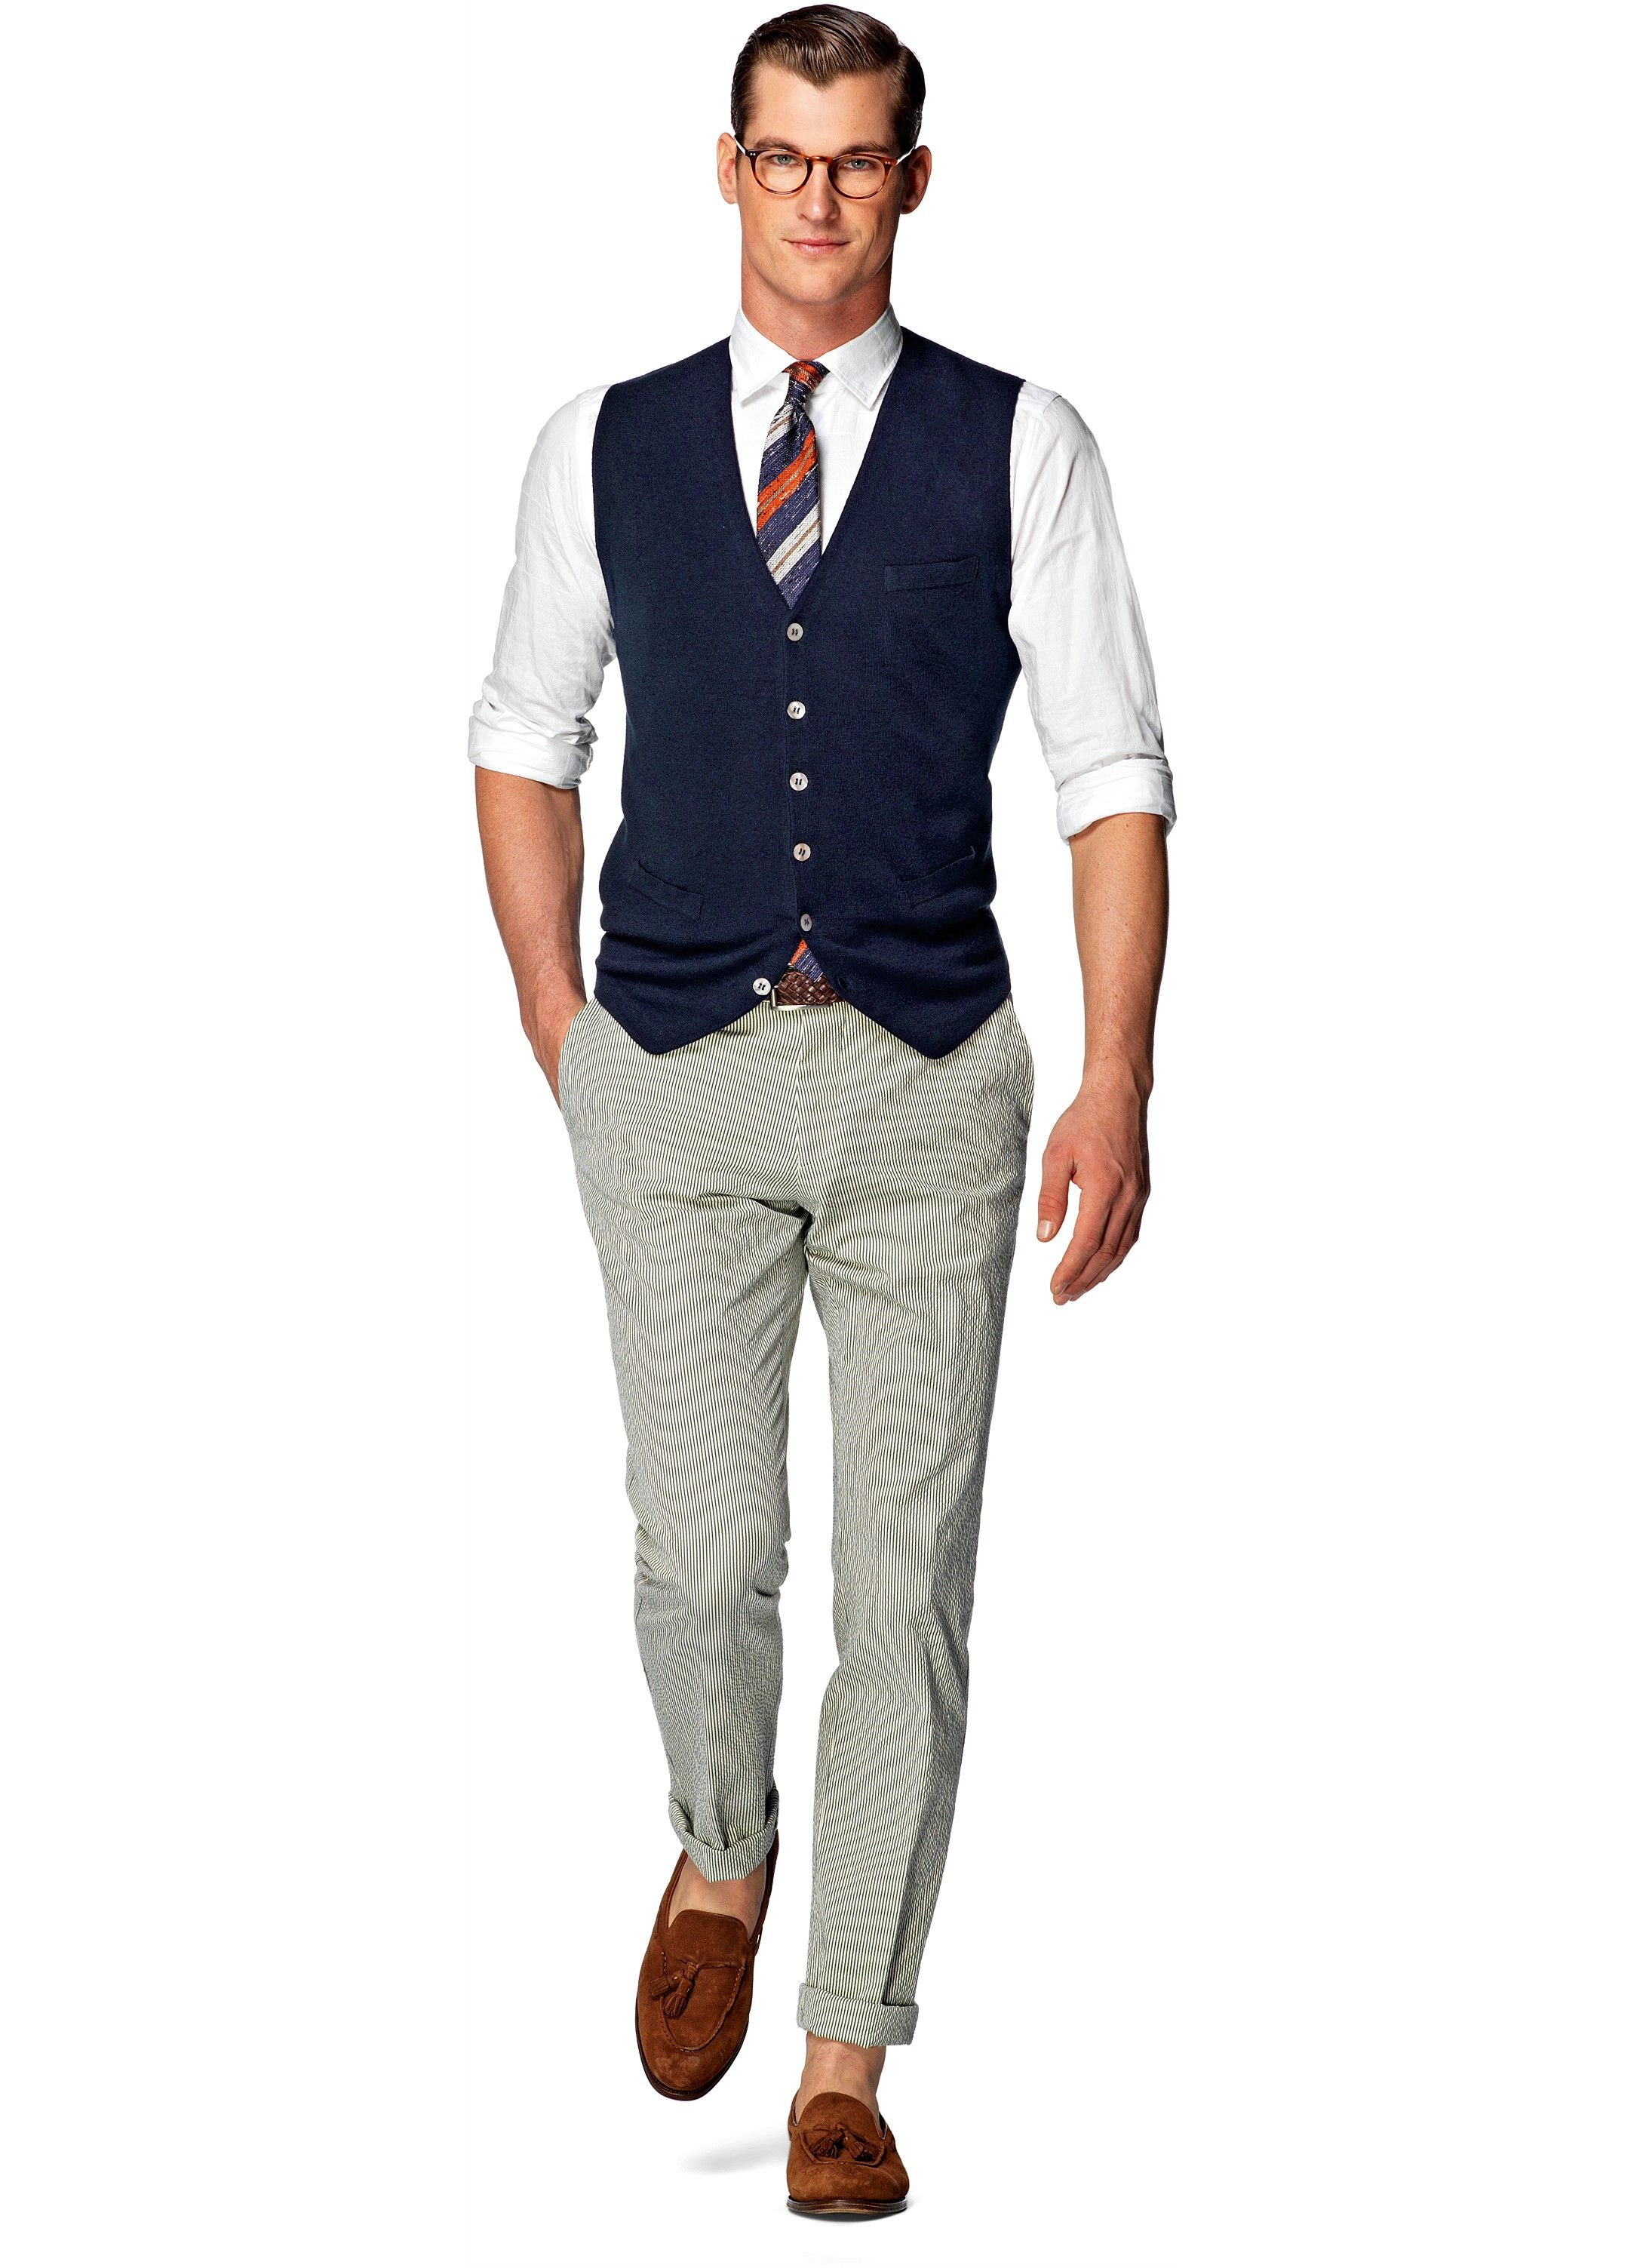 Nieuw Navy Knitted Waistcoat Sw485   Suitsupply Online Store   Outfits NP-75